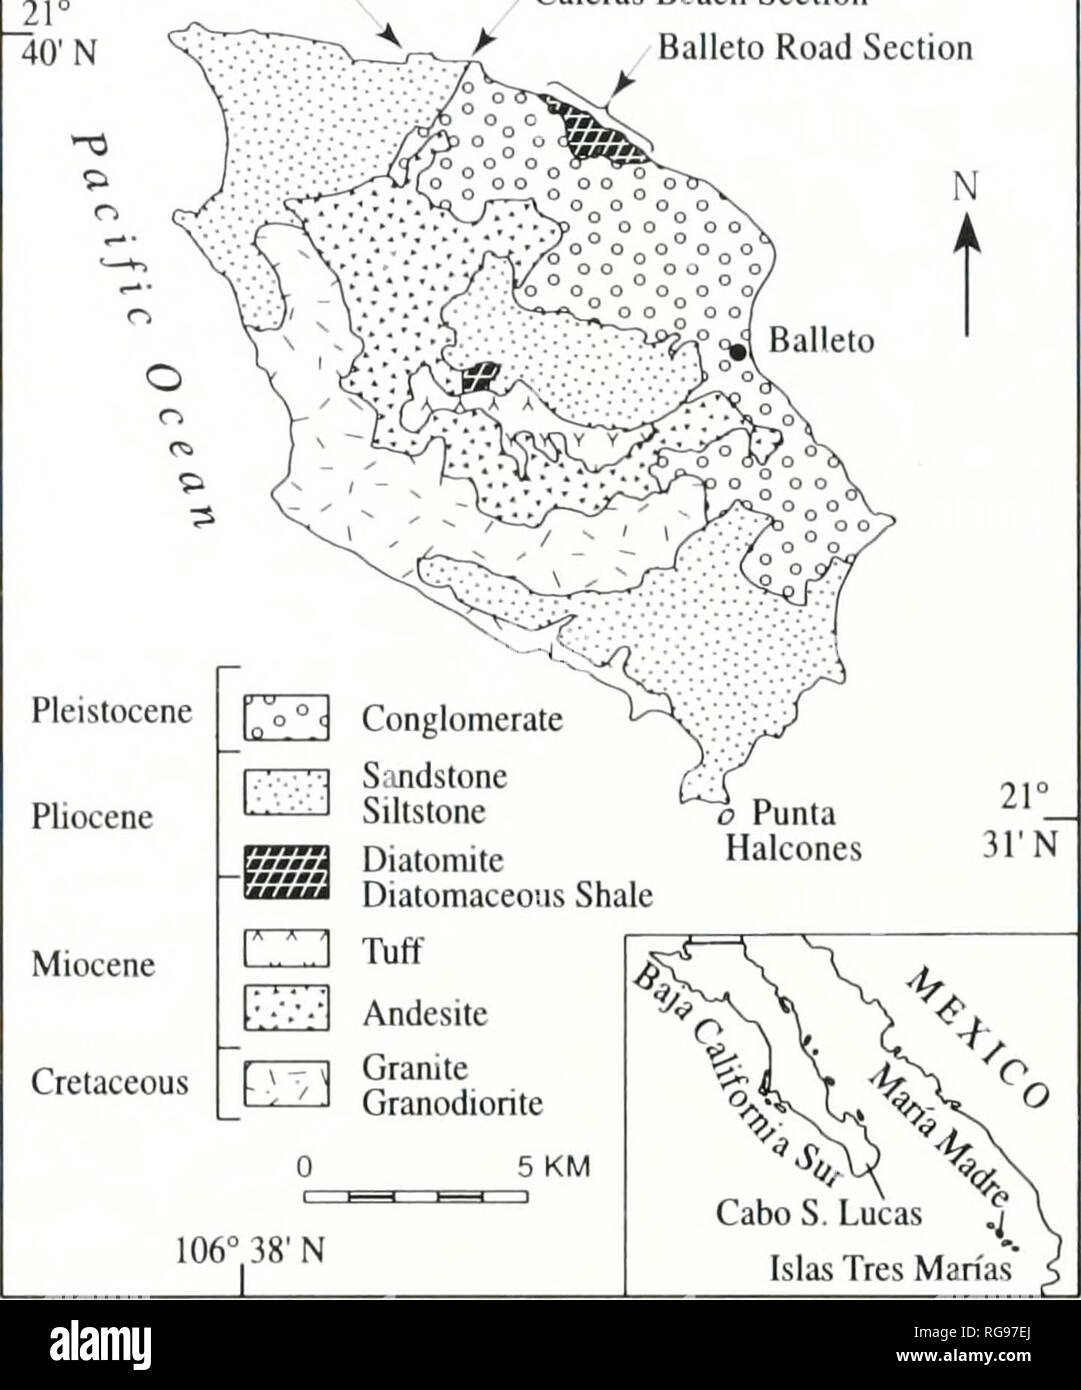 . Bulletins of American paleontology. Baja California Stratigraphy: Carreno and Smith 103 for differences in sediment composition between the vertebrate-bearing rocks and those farther north, but detailed mapping and sedimentological studies are needed. Concliilioii Espinosa-Arrubarrena (1979) correlated the beds at Rancho Algodones with the Tirabuzon Formation of the Boleo basin on the basis of shark teeth. Moliuscan fossils from unnamed, reworked, marine sediments of the southern Cabo Trough also include a number of ta.xa in common with the late Middle to Late Miocene section at southwestern - Stock Image